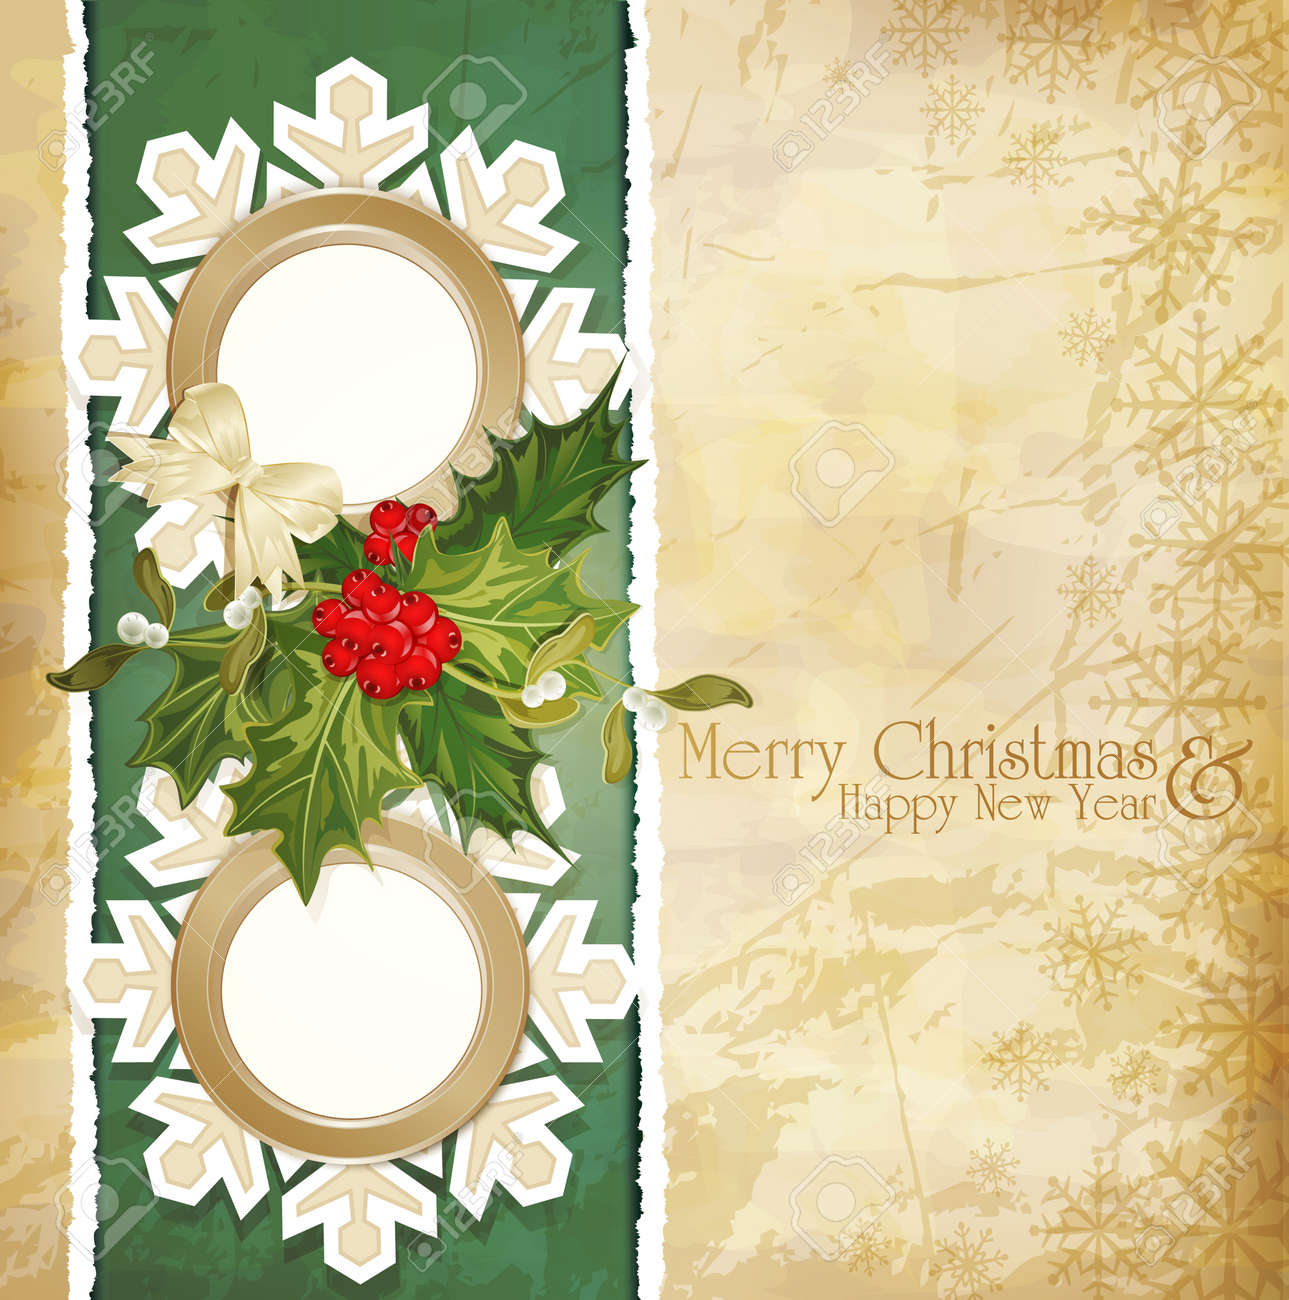 vector vintage retro christmas background with sprig of European holly, torn paper and two frames Stock Vector - 11282723